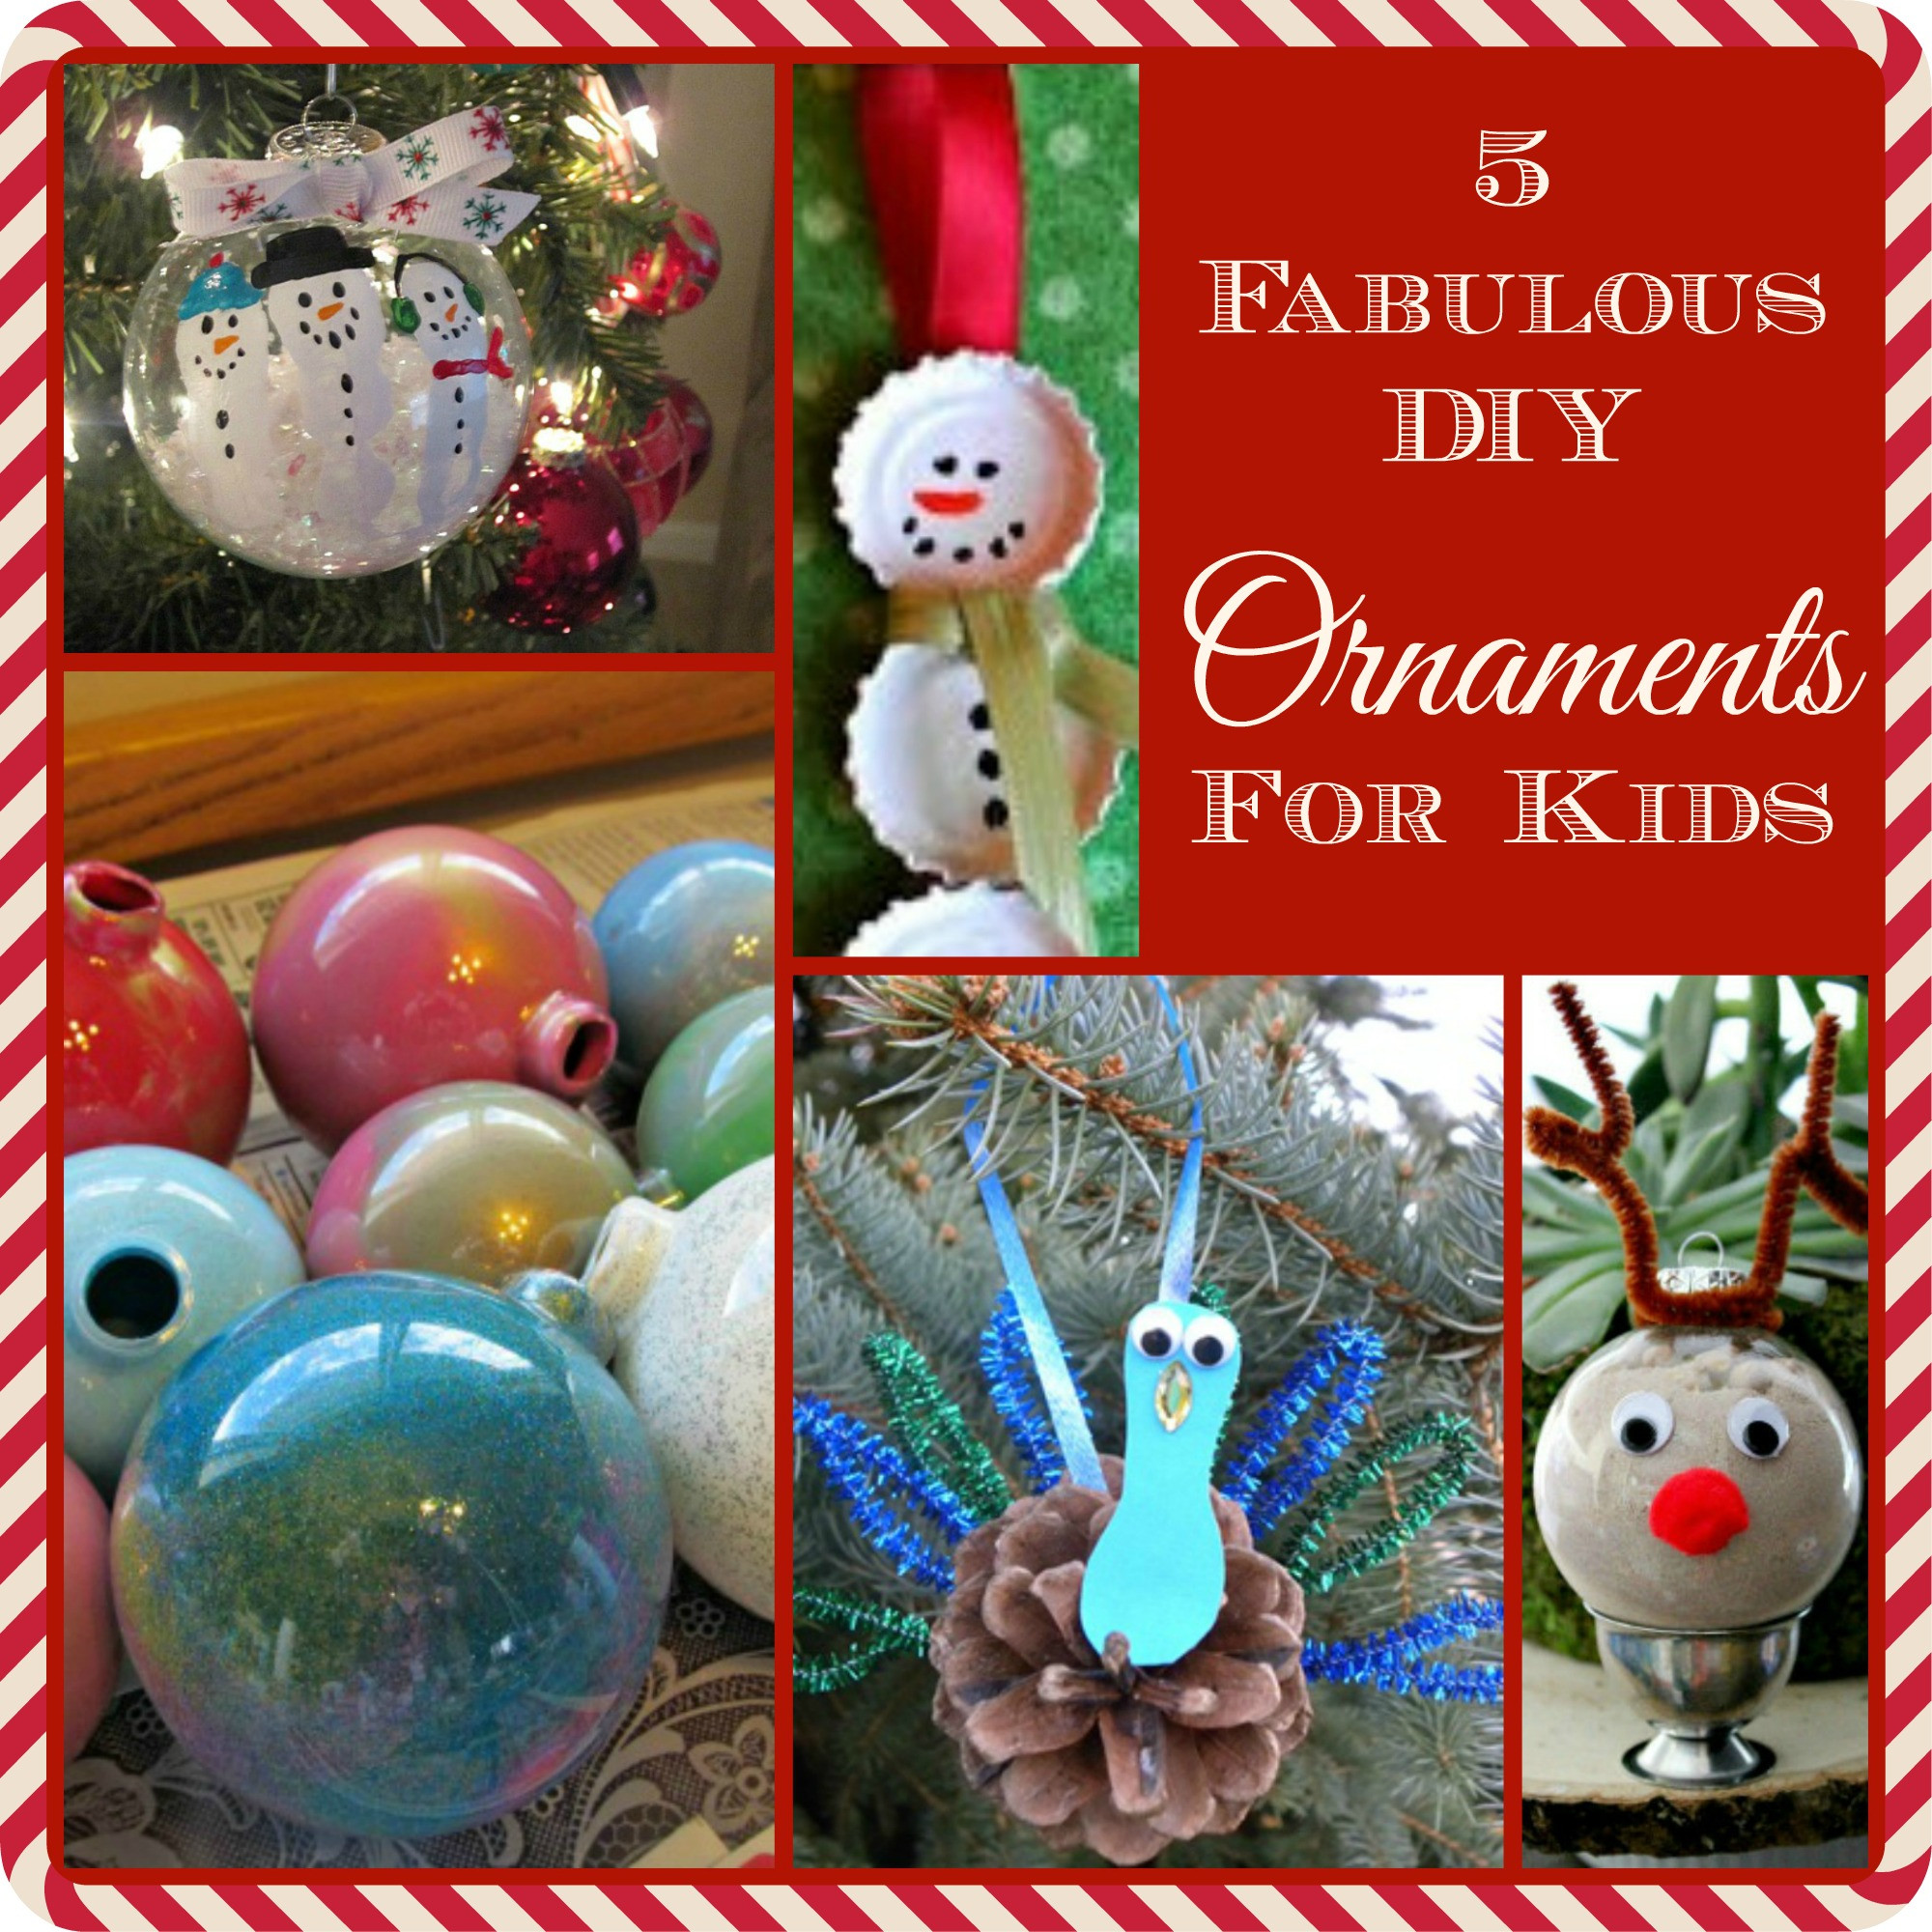 Best ideas about Kids DIY Ornaments . Save or Pin 5 Fabulous DIY Christmas Ornaments for Kids The Now.